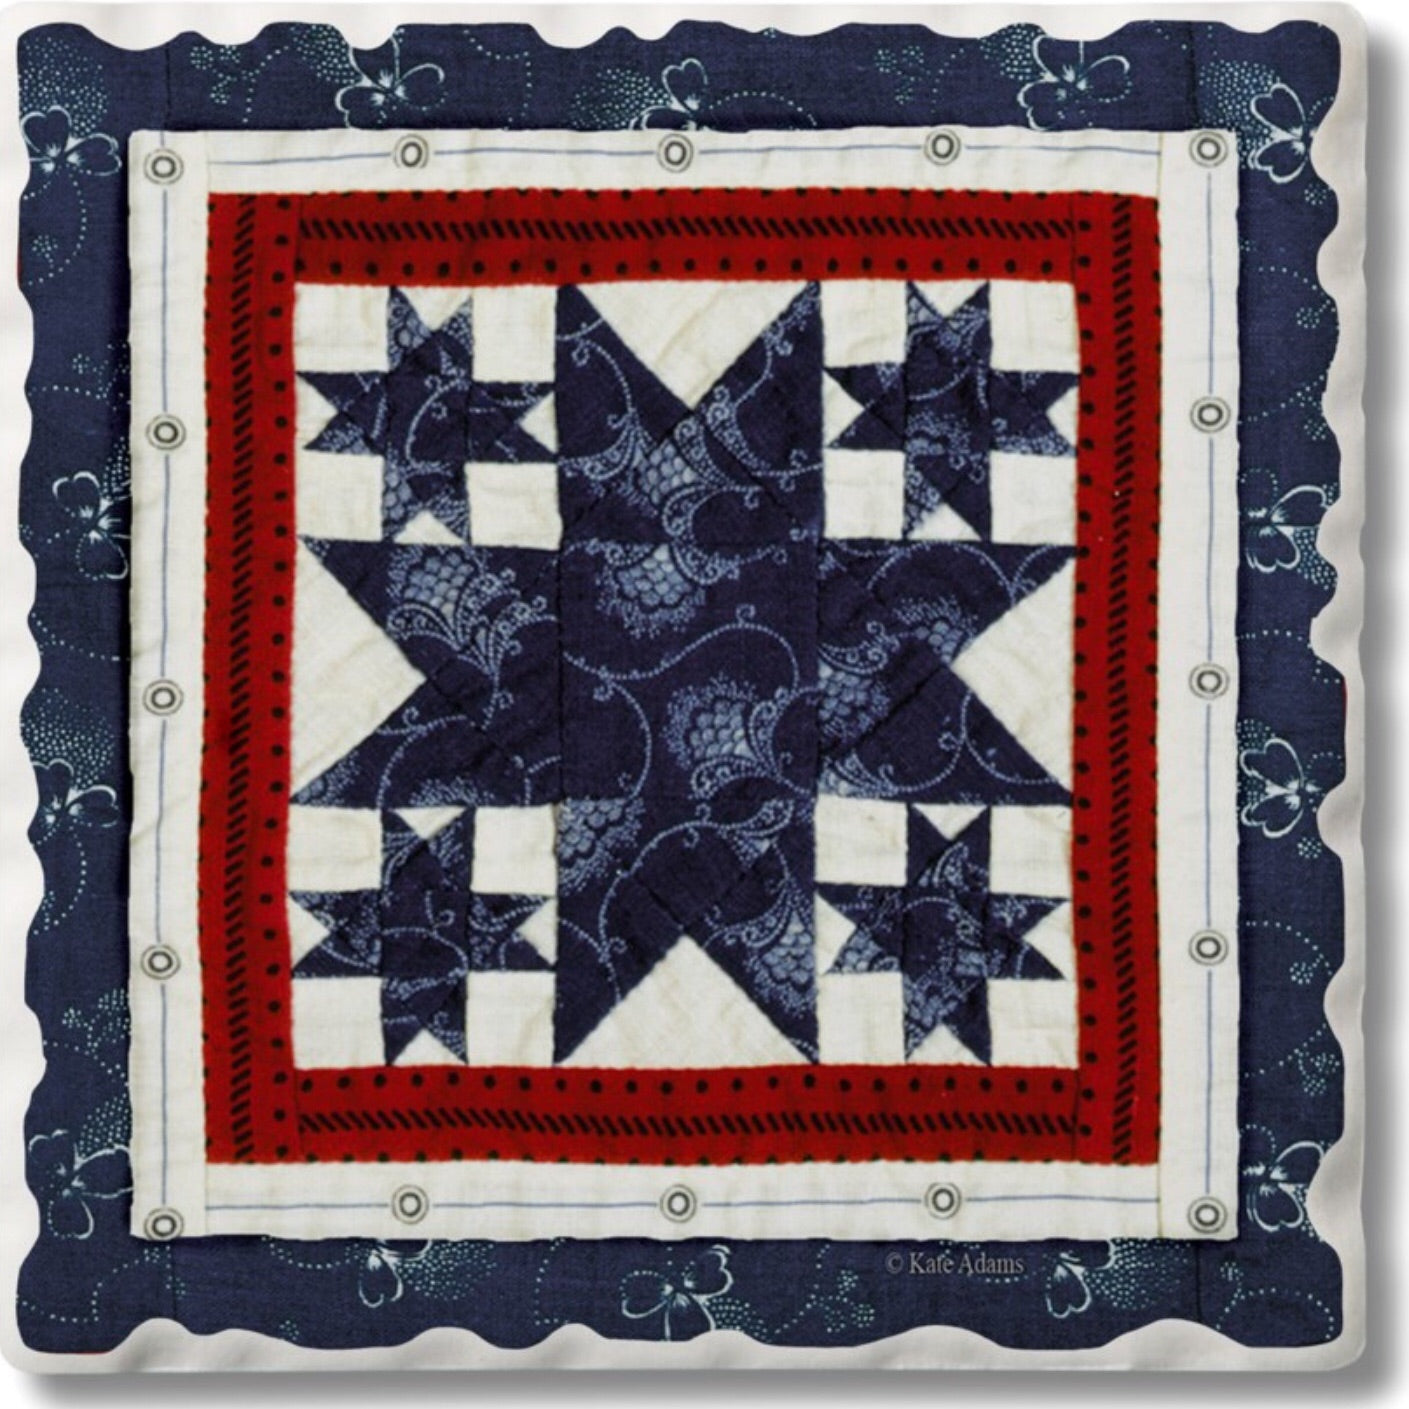 Absorbent Stone Coaster - Quilt 10